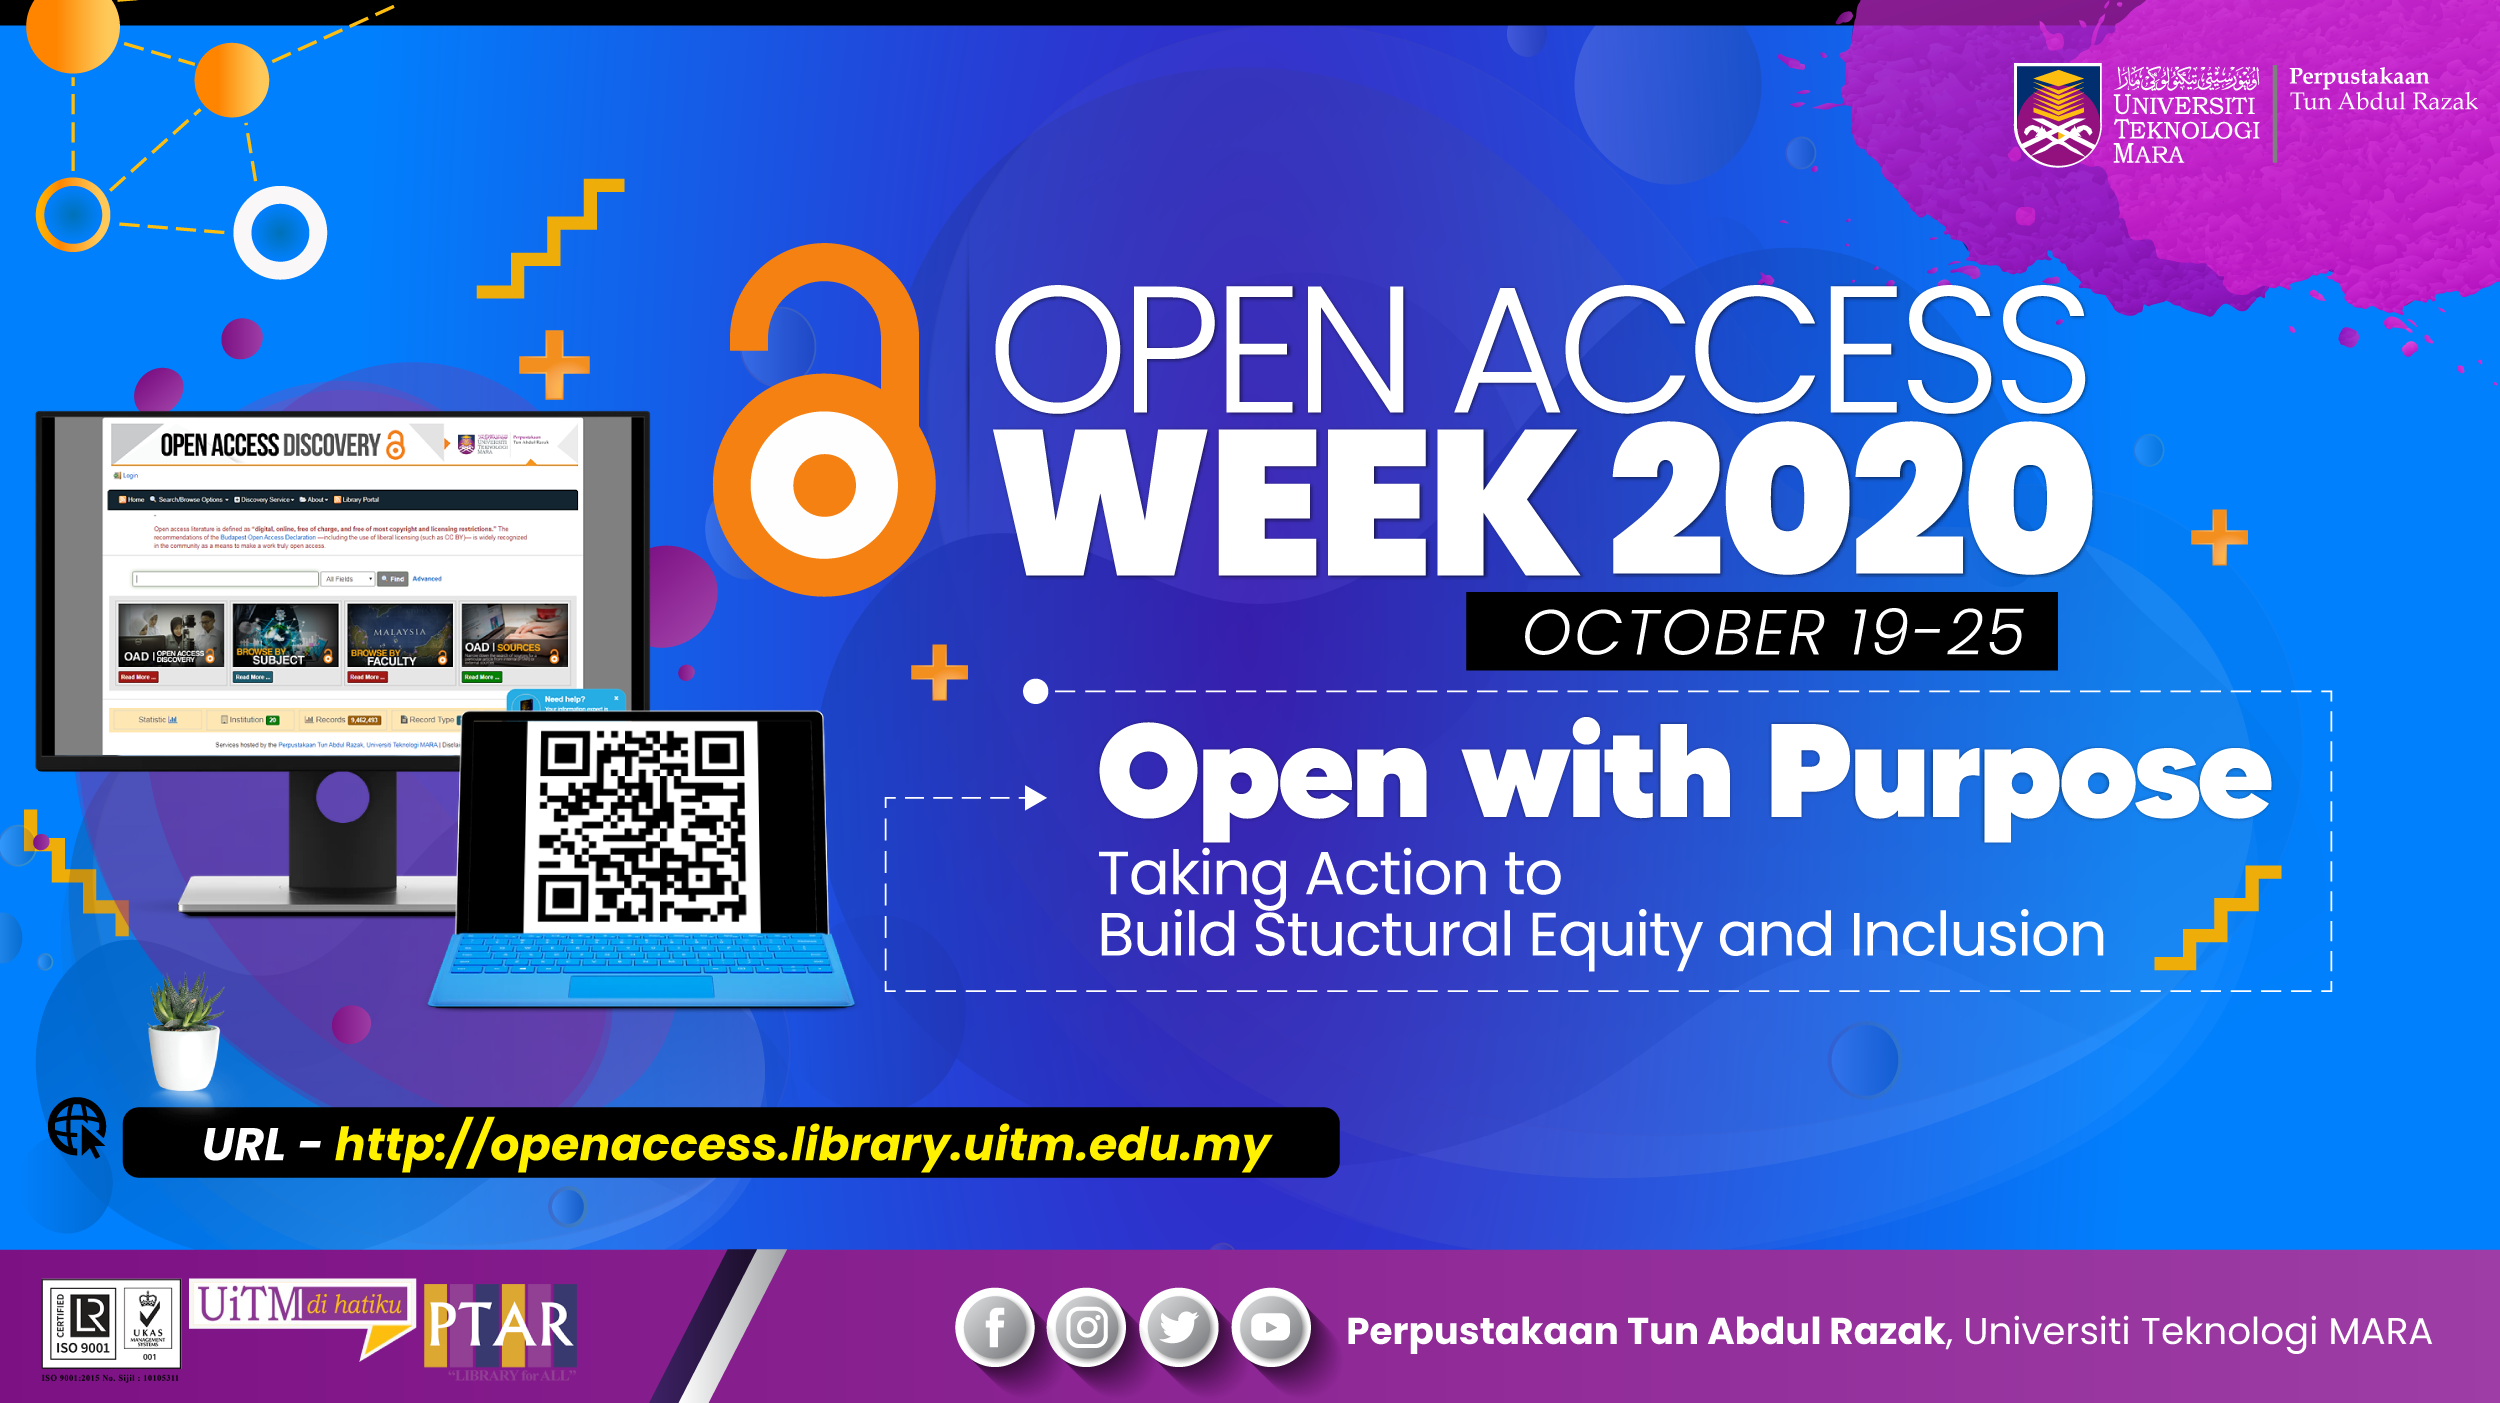 2020 Open Access Week